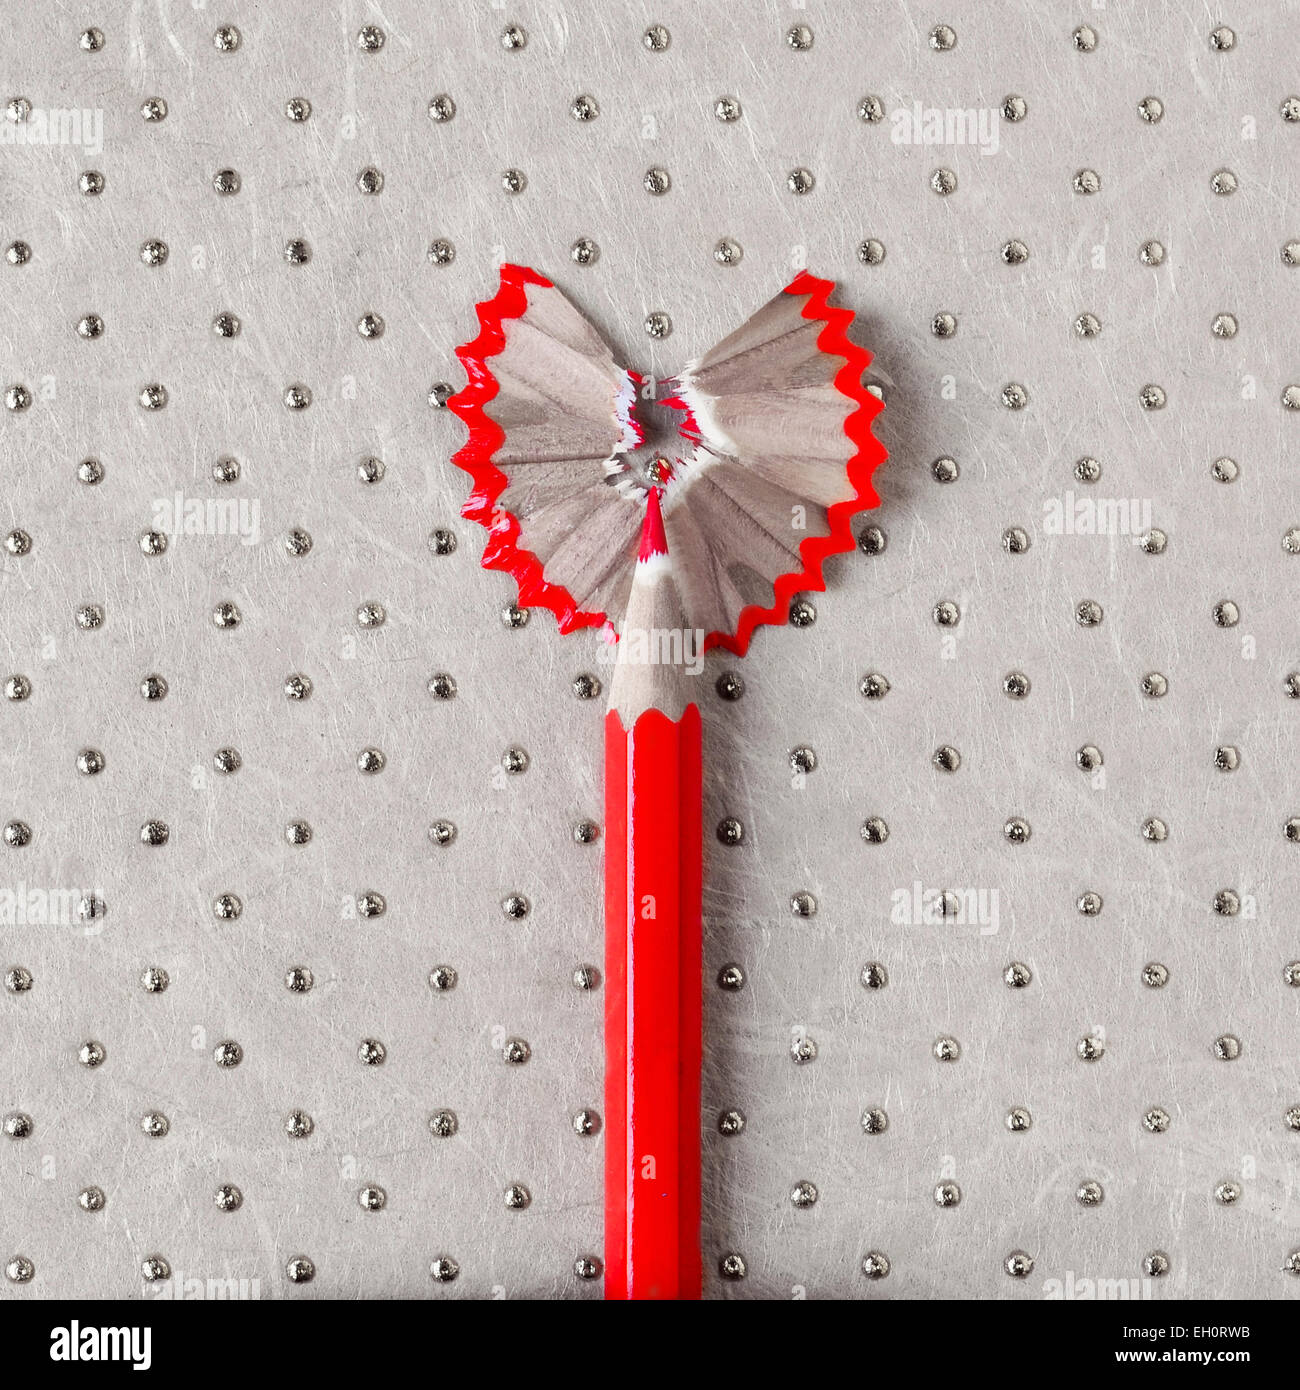 a sharpened wooden red coloured pencil with its shavings forming a heart on a patterned background - Stock Image